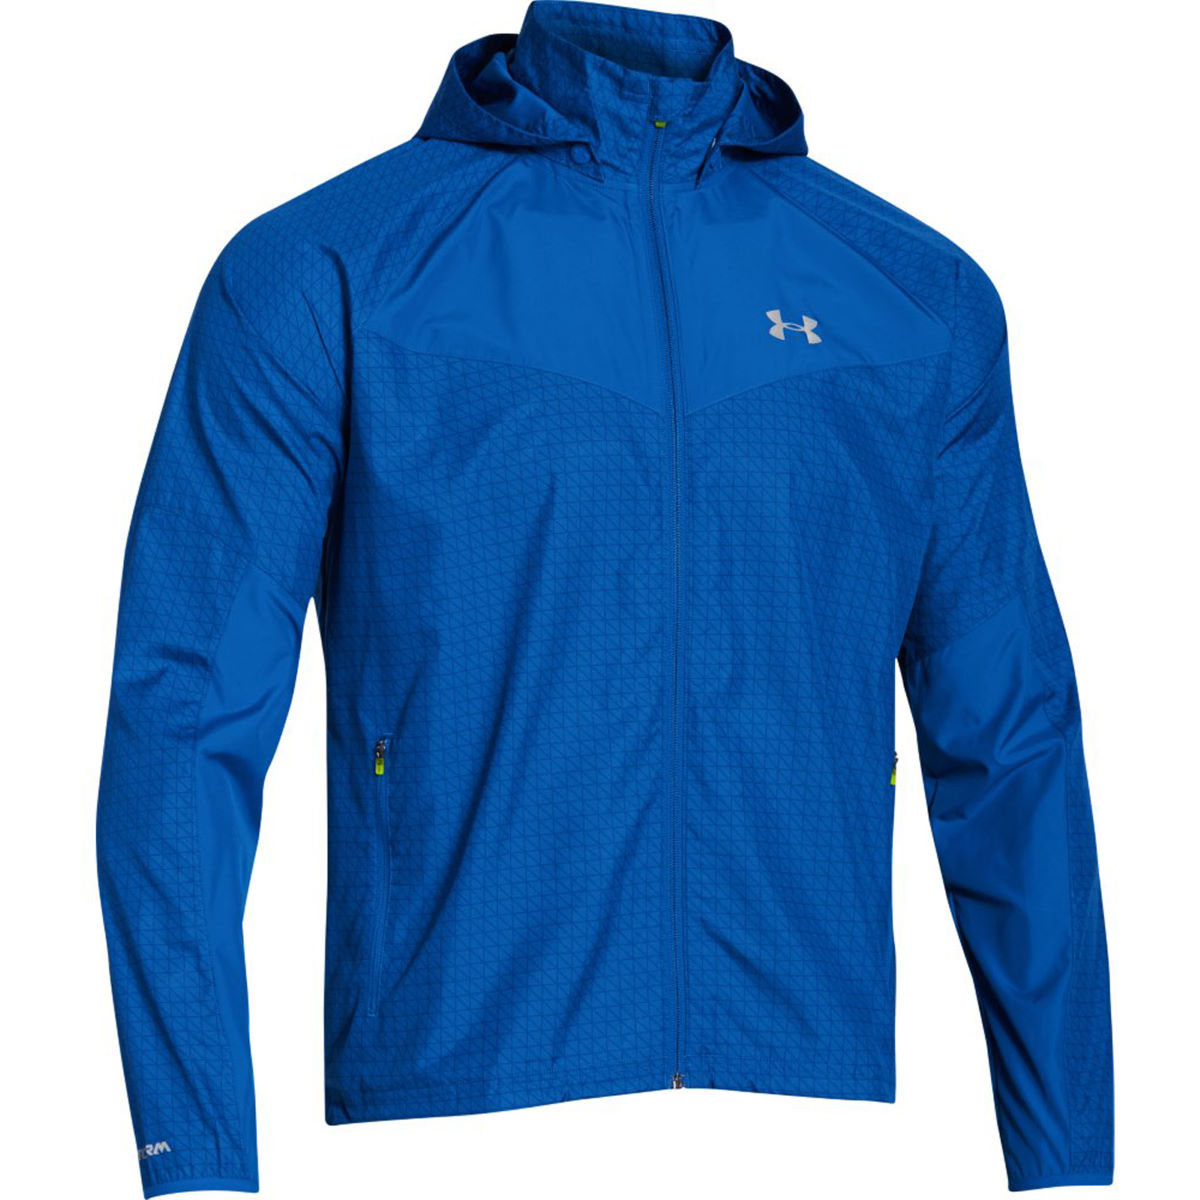 Under Armour Storm Anchor Jacket - AW14